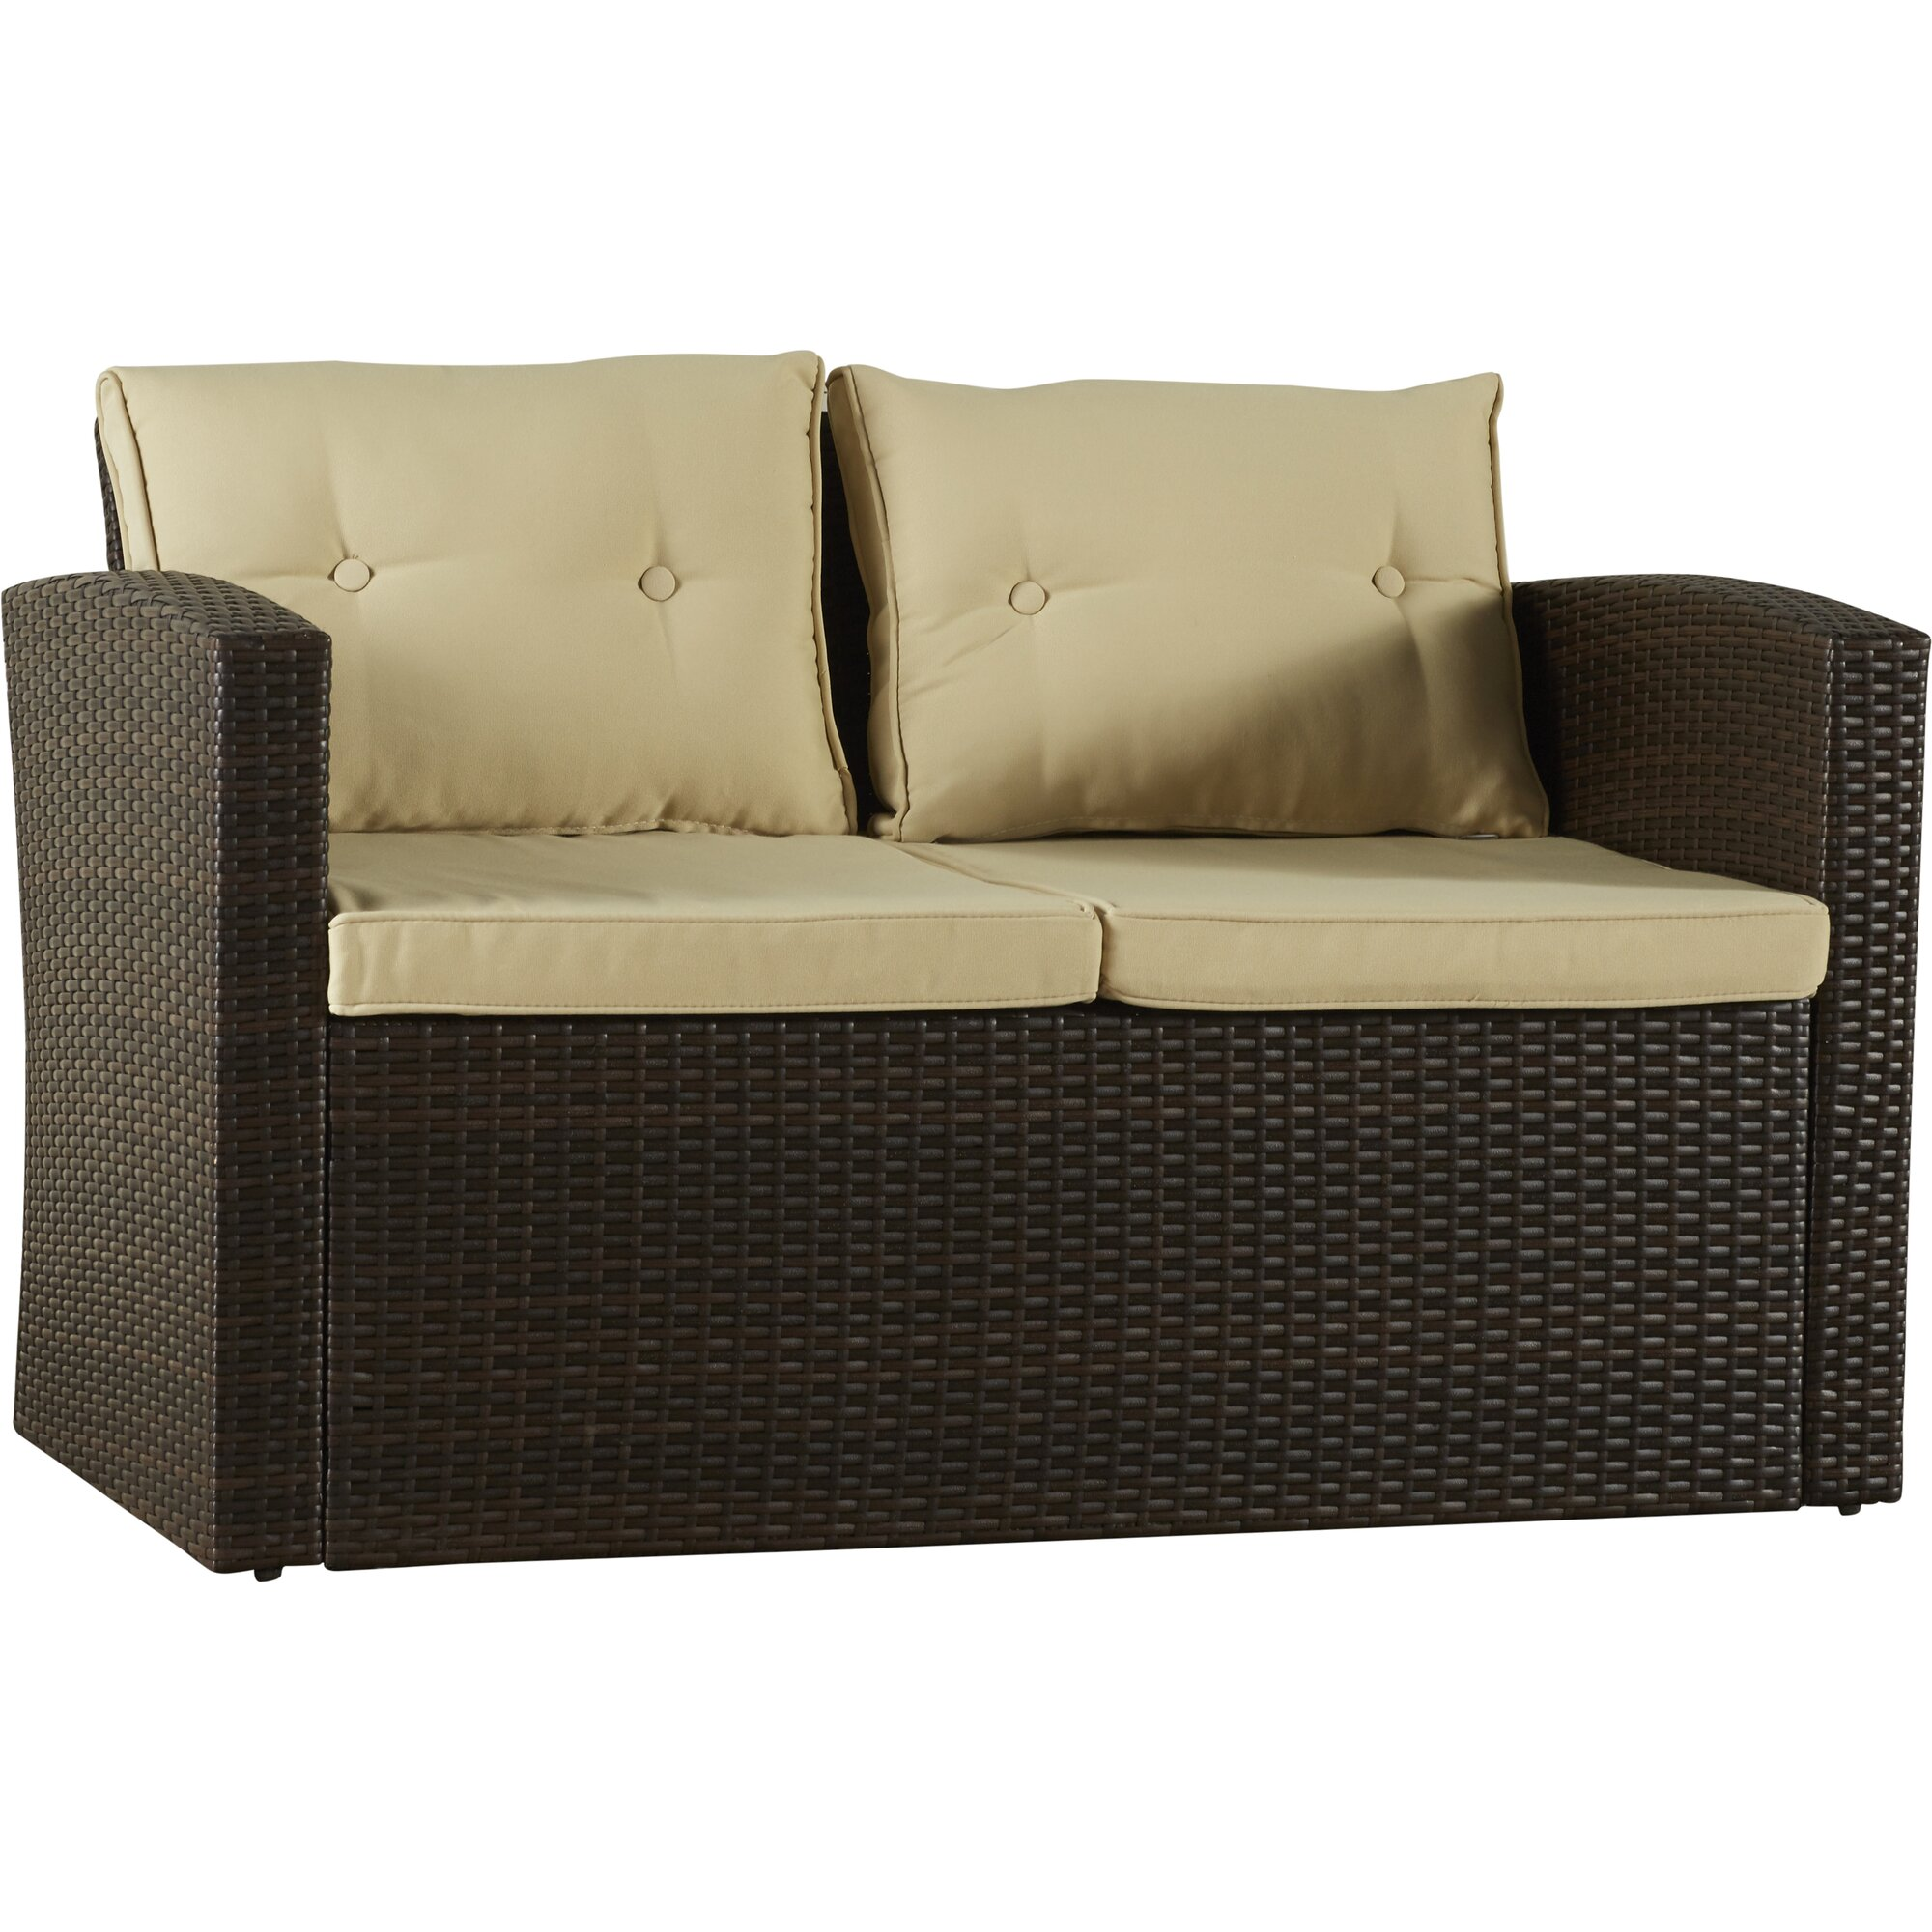 Alcott Hill Raven 4 Piece Seating Group with Cushion u0026 Reviews : Wayfair